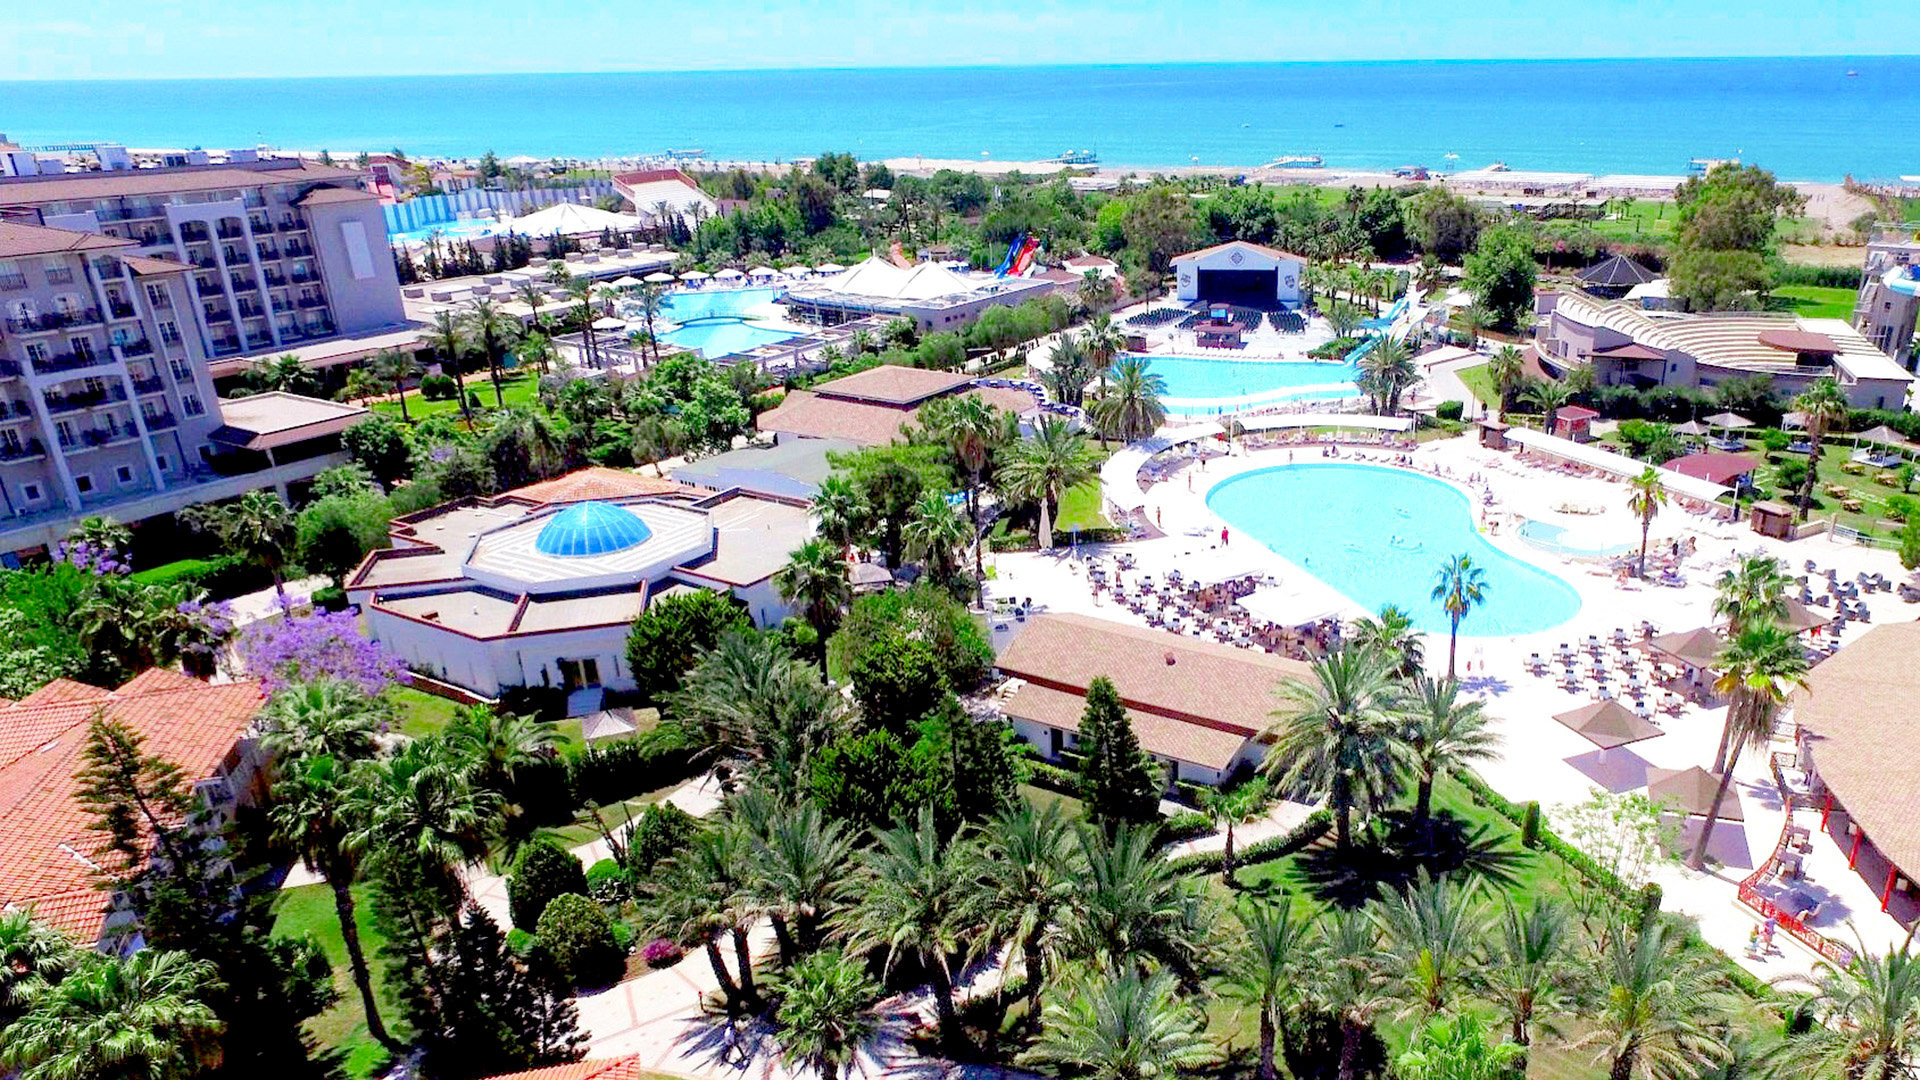 Hotel Euphoria Palm Beach Resort